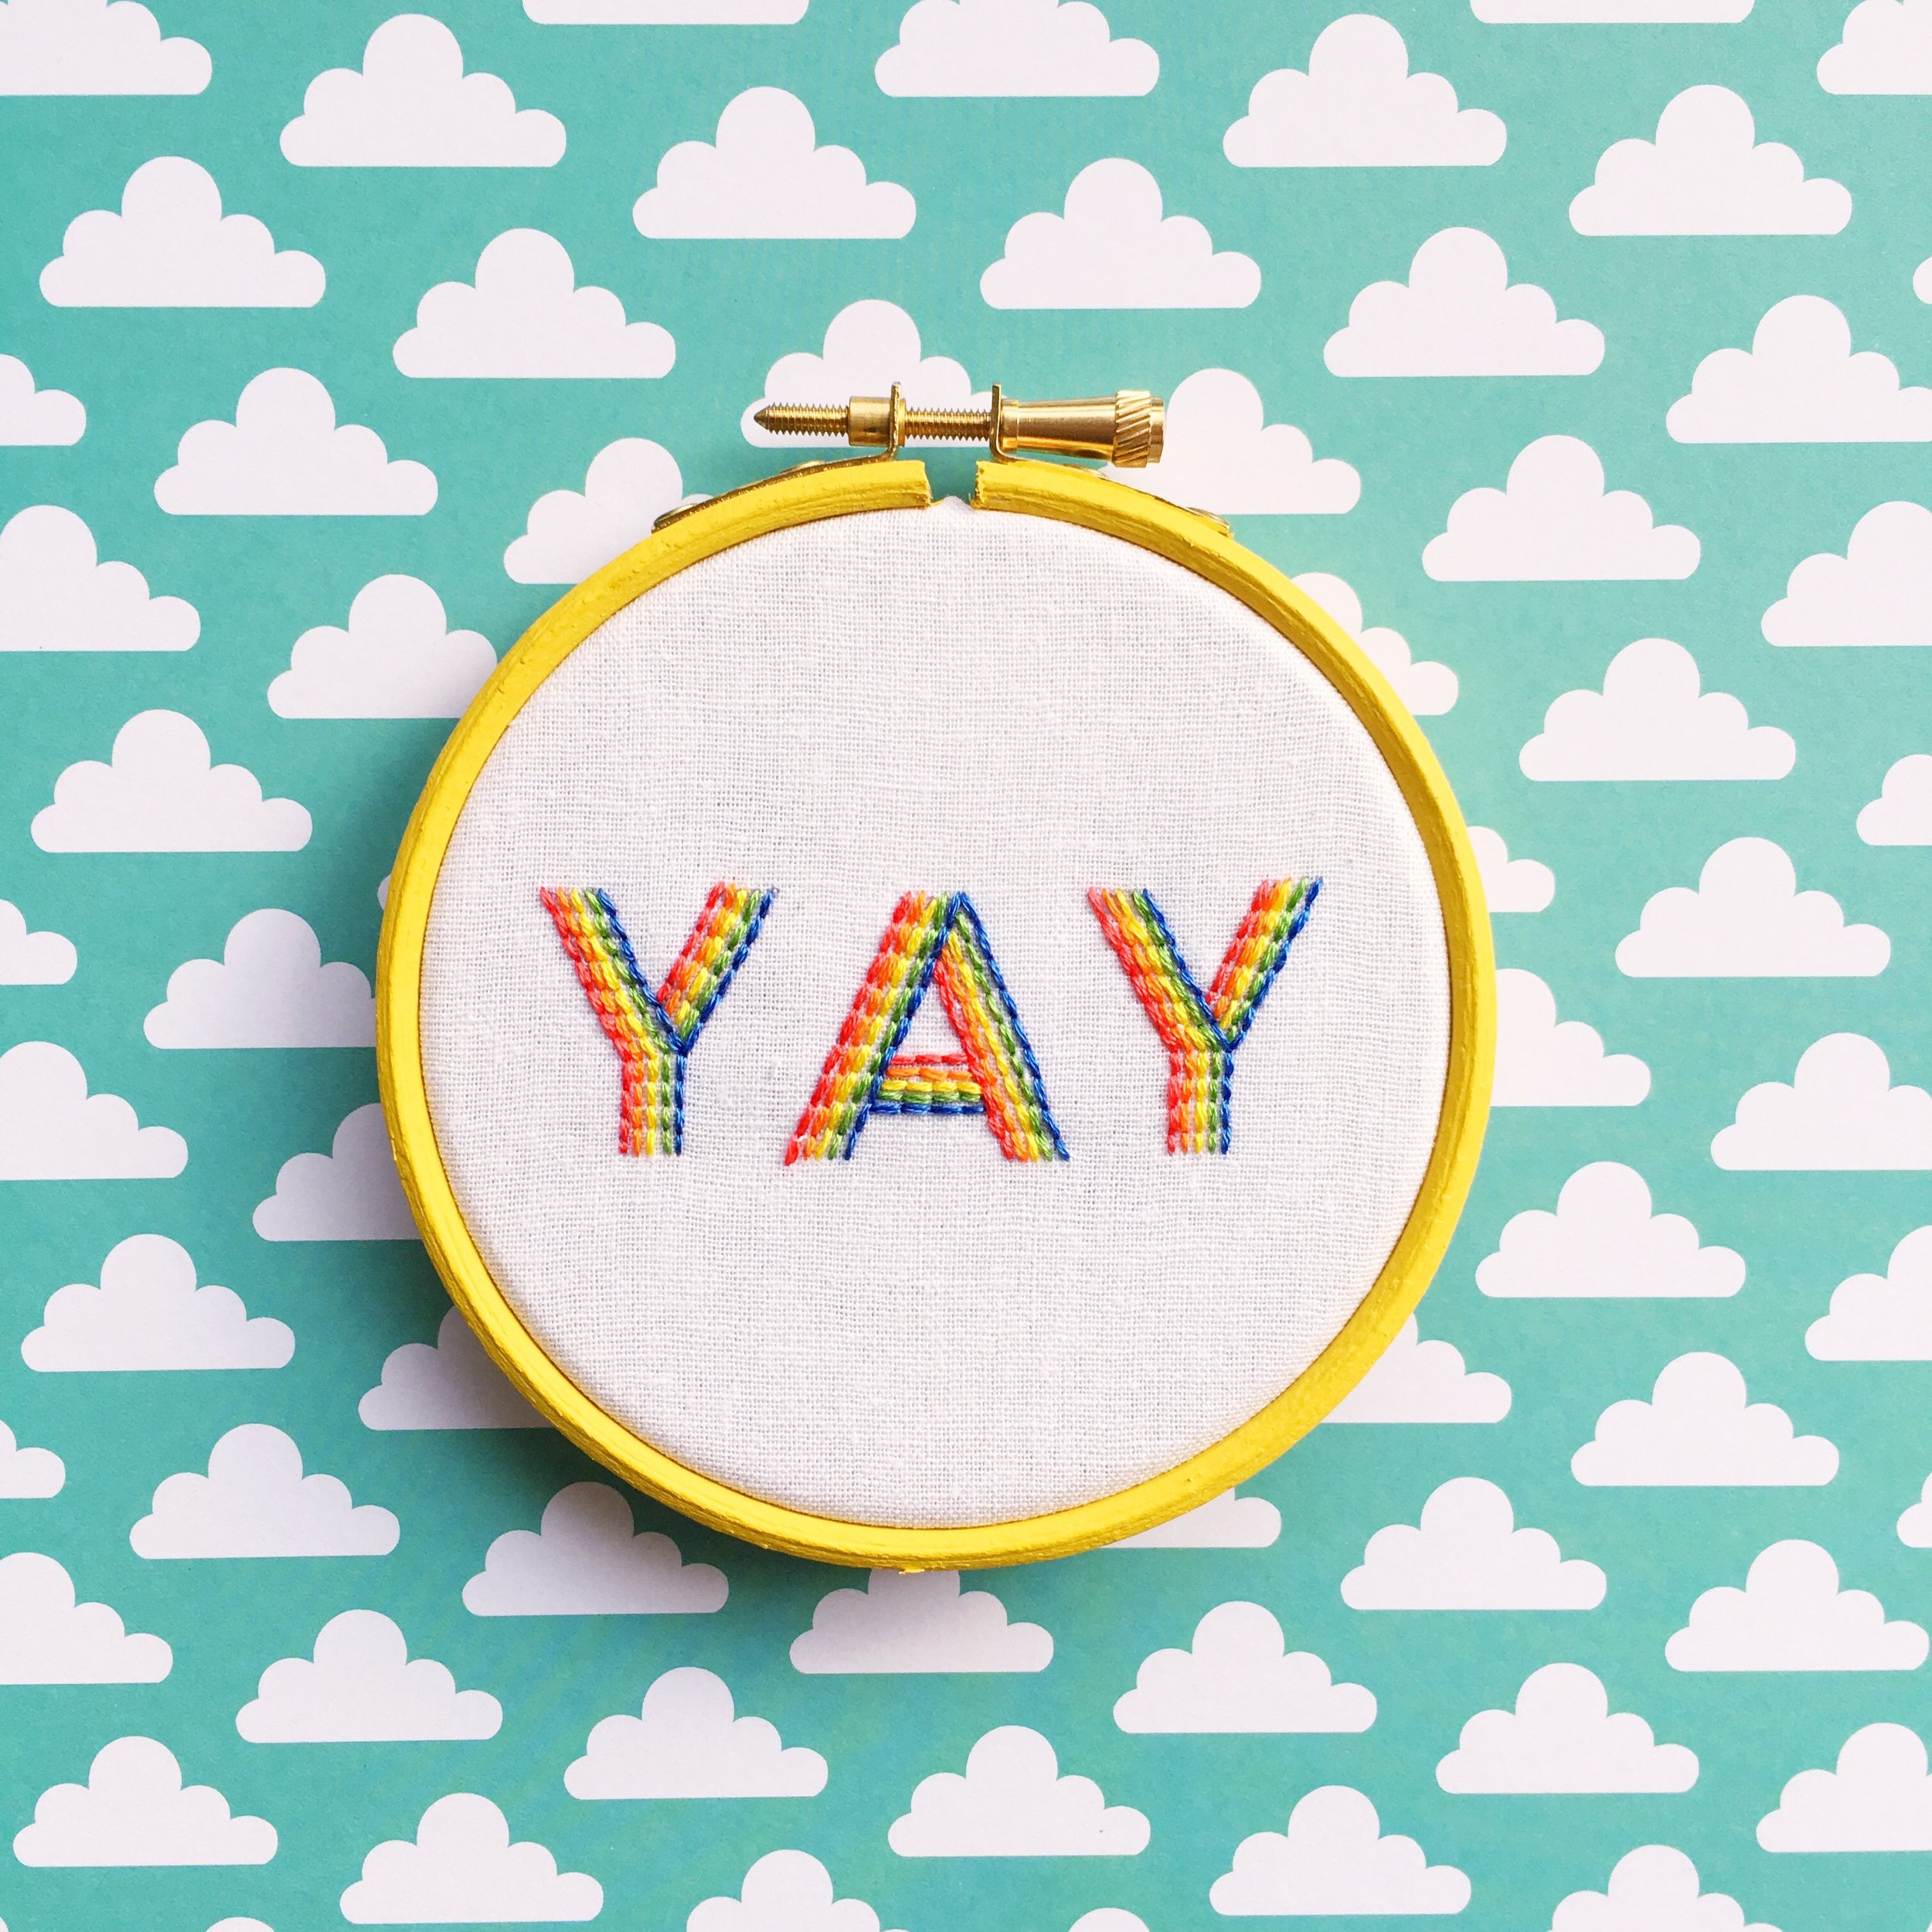 YAY mini hoop | Hello! Hooray!.jpg